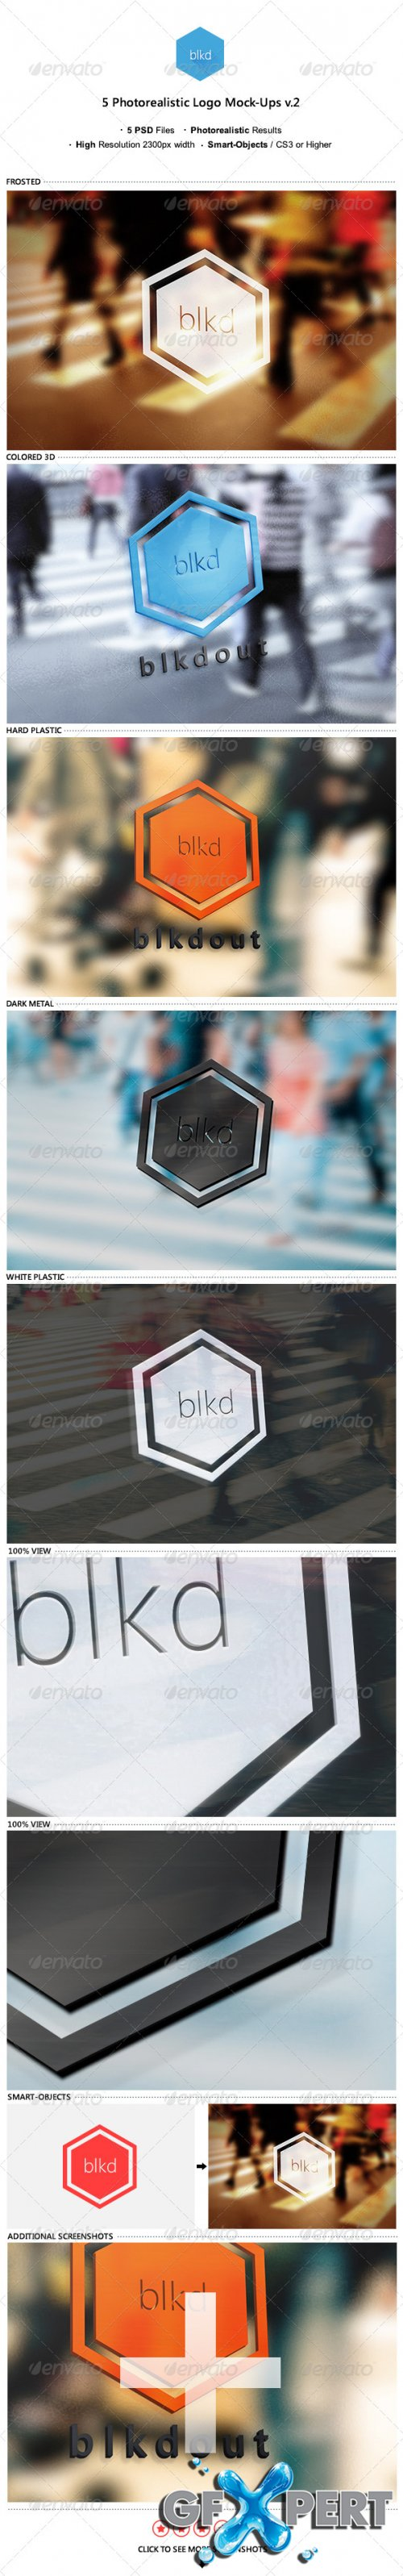 GraphicRiver - 5 Photorealistic Logo Mock-Ups v.2